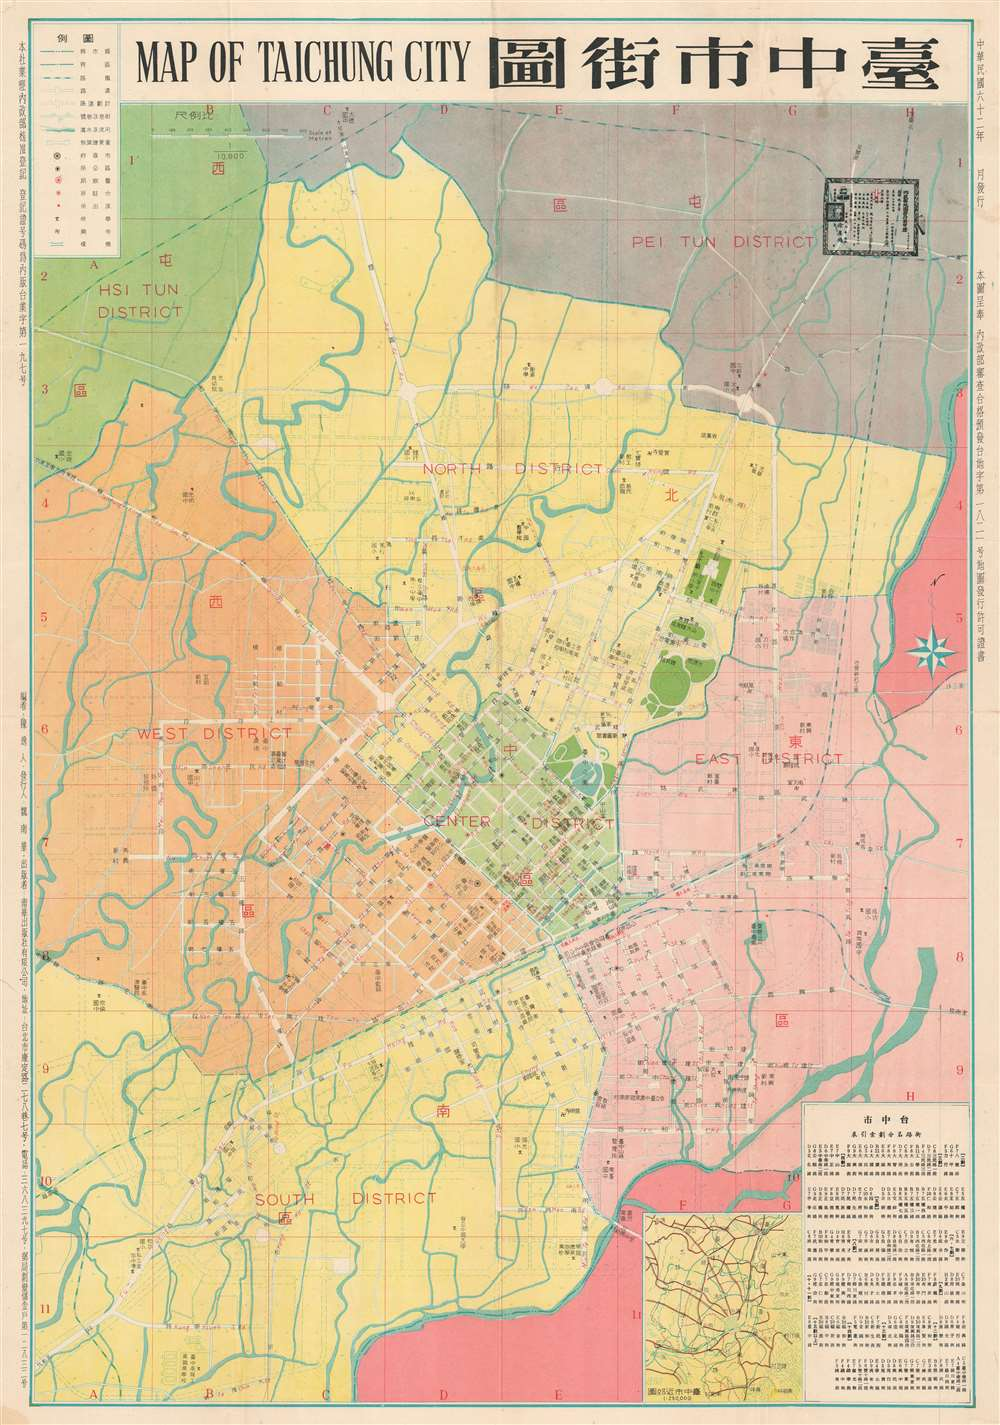 1972 Nan Hua Publishing Company City Plan or Map of/ Taichung City, Taiwan